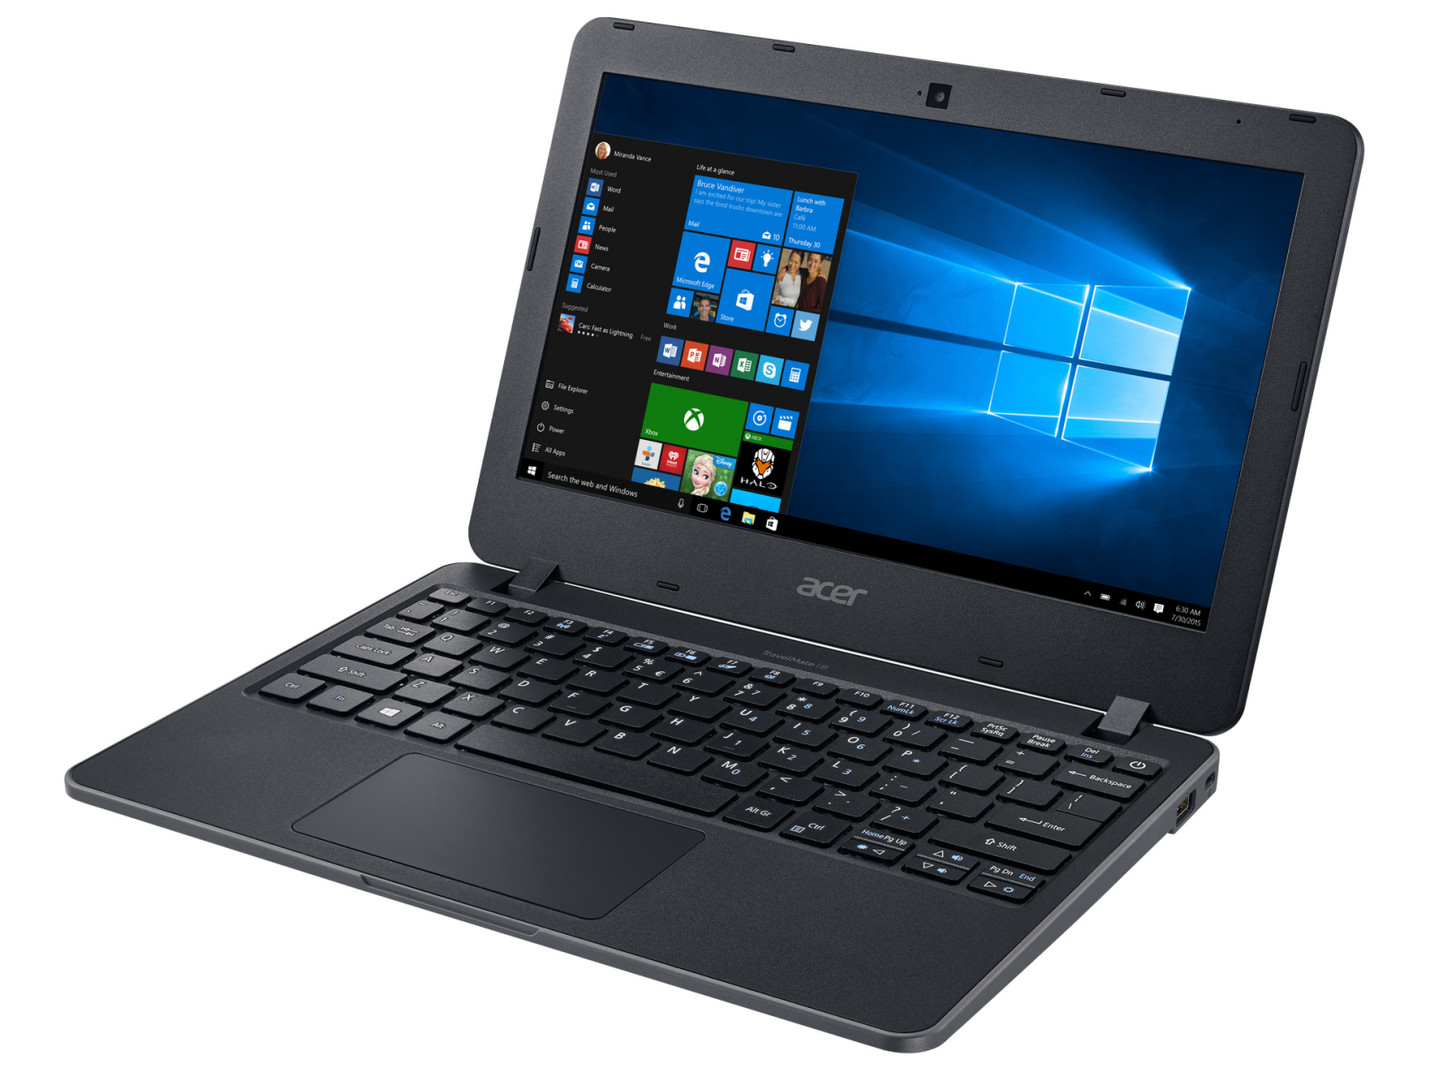 Acer TravelMate B117-M-P16Q Netbook Review